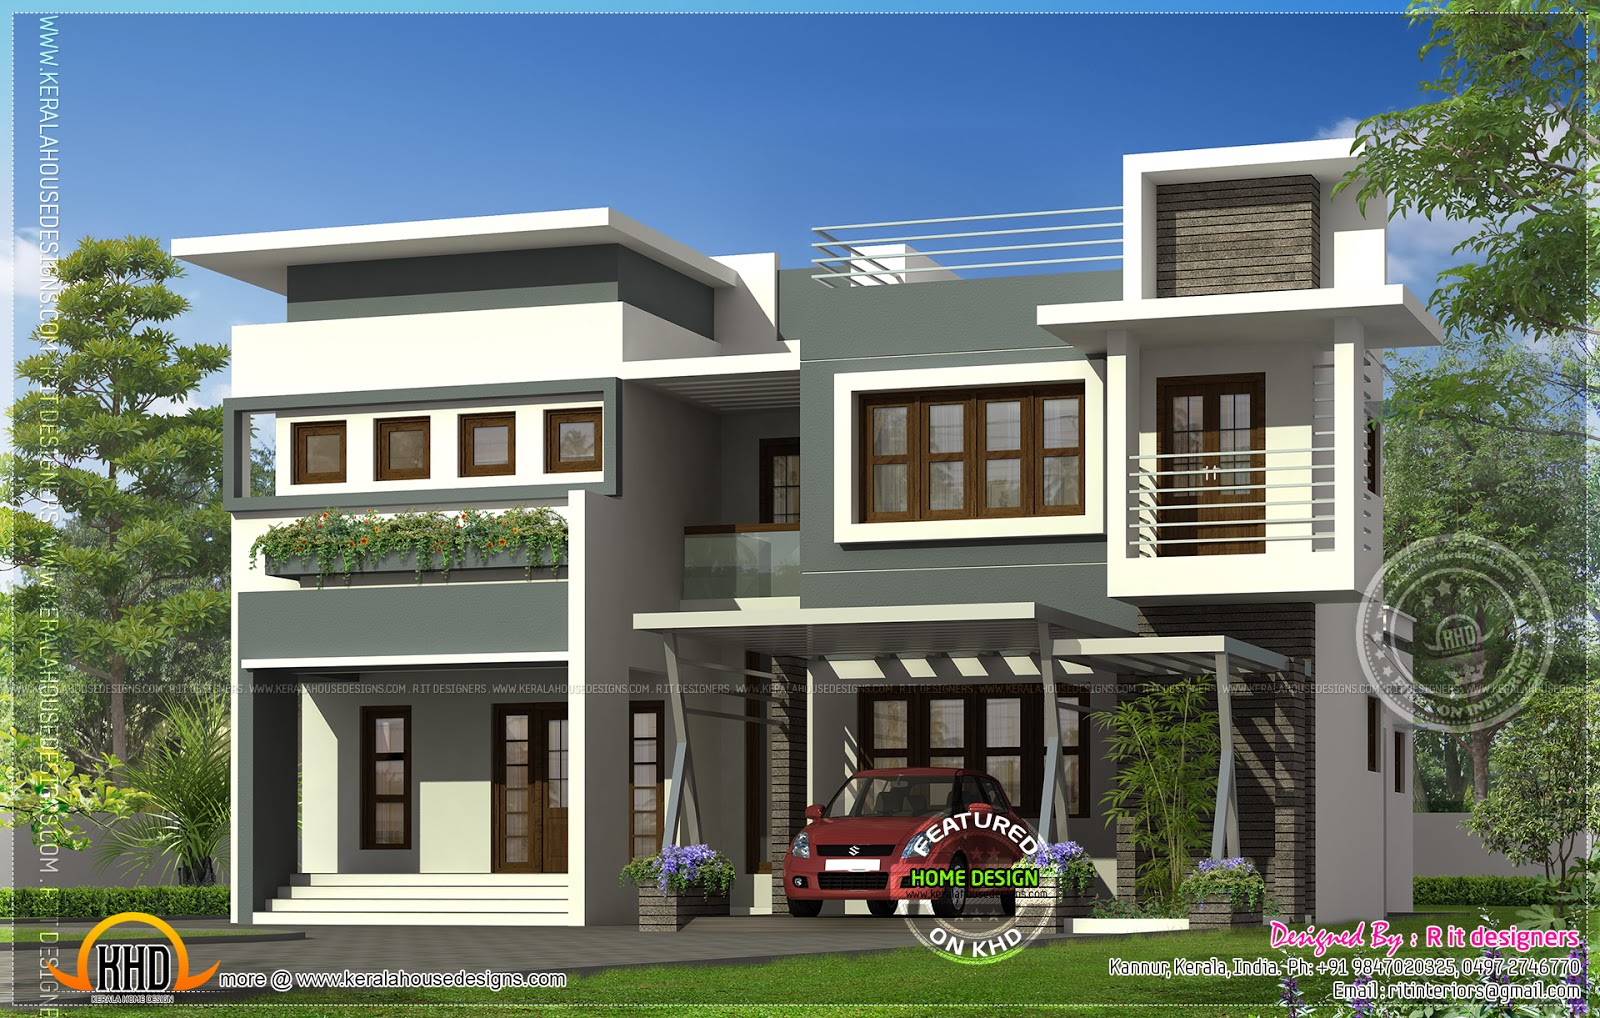 Modern contemporary residence design kerala home design Contemporary home design